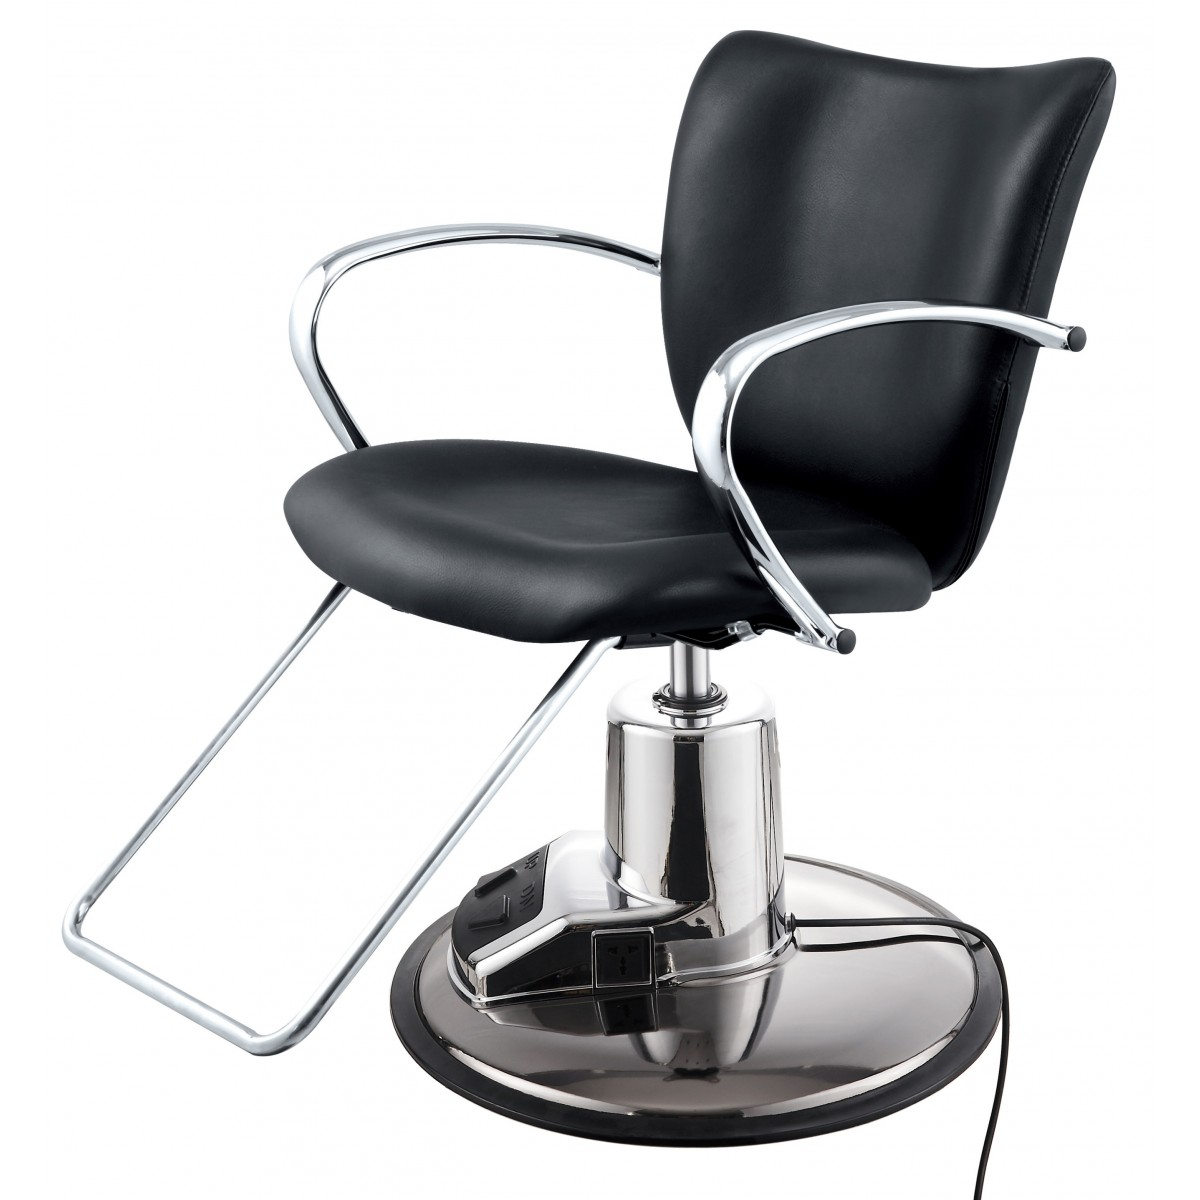 """HELENA' Electric Styling Chair"